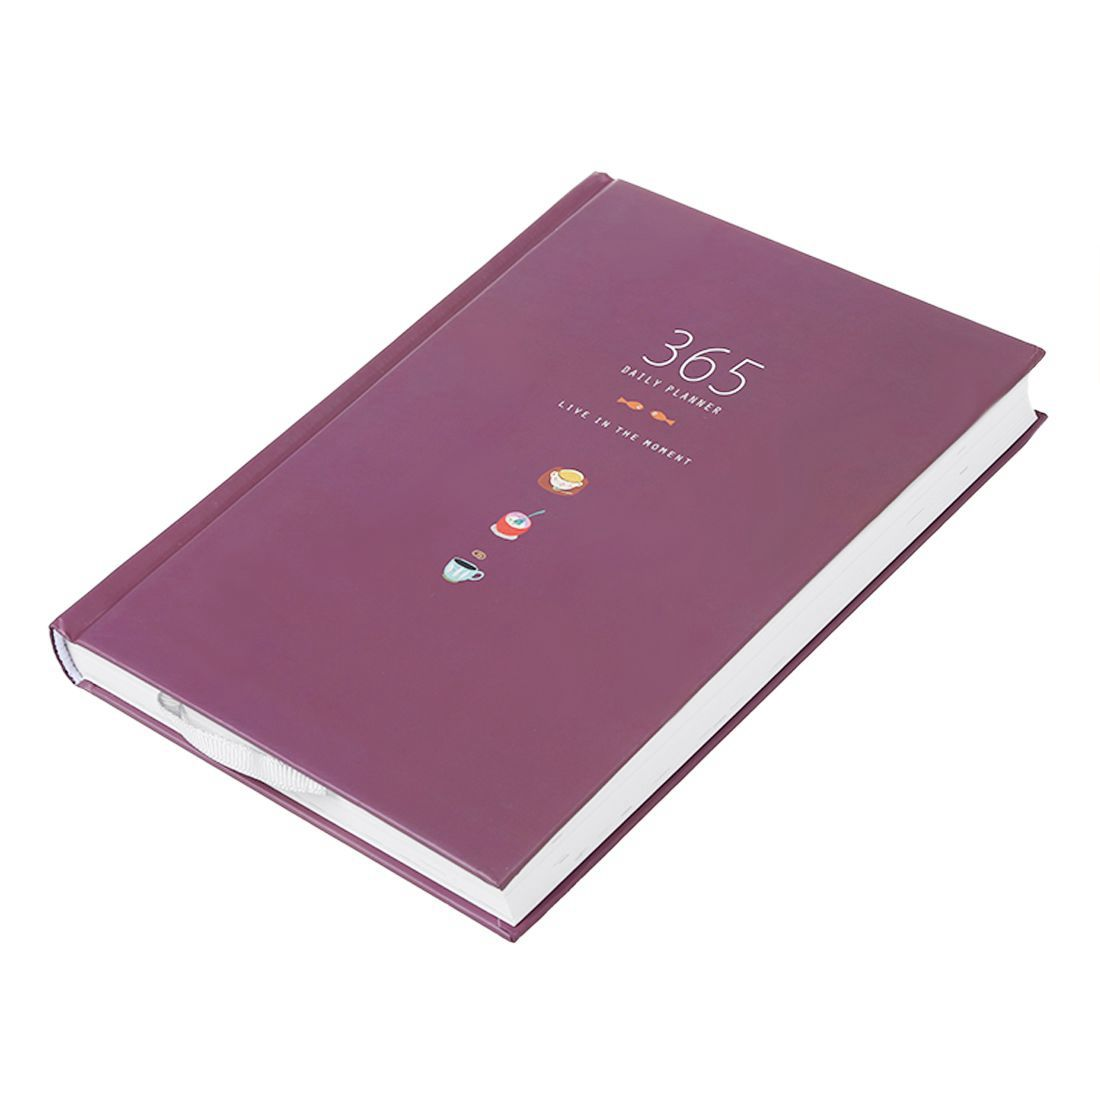 365 days personal diary planner hardcover notebook diary office weekly schedule cute korean stationery microsoft office 365 personal для windows macos и ios box